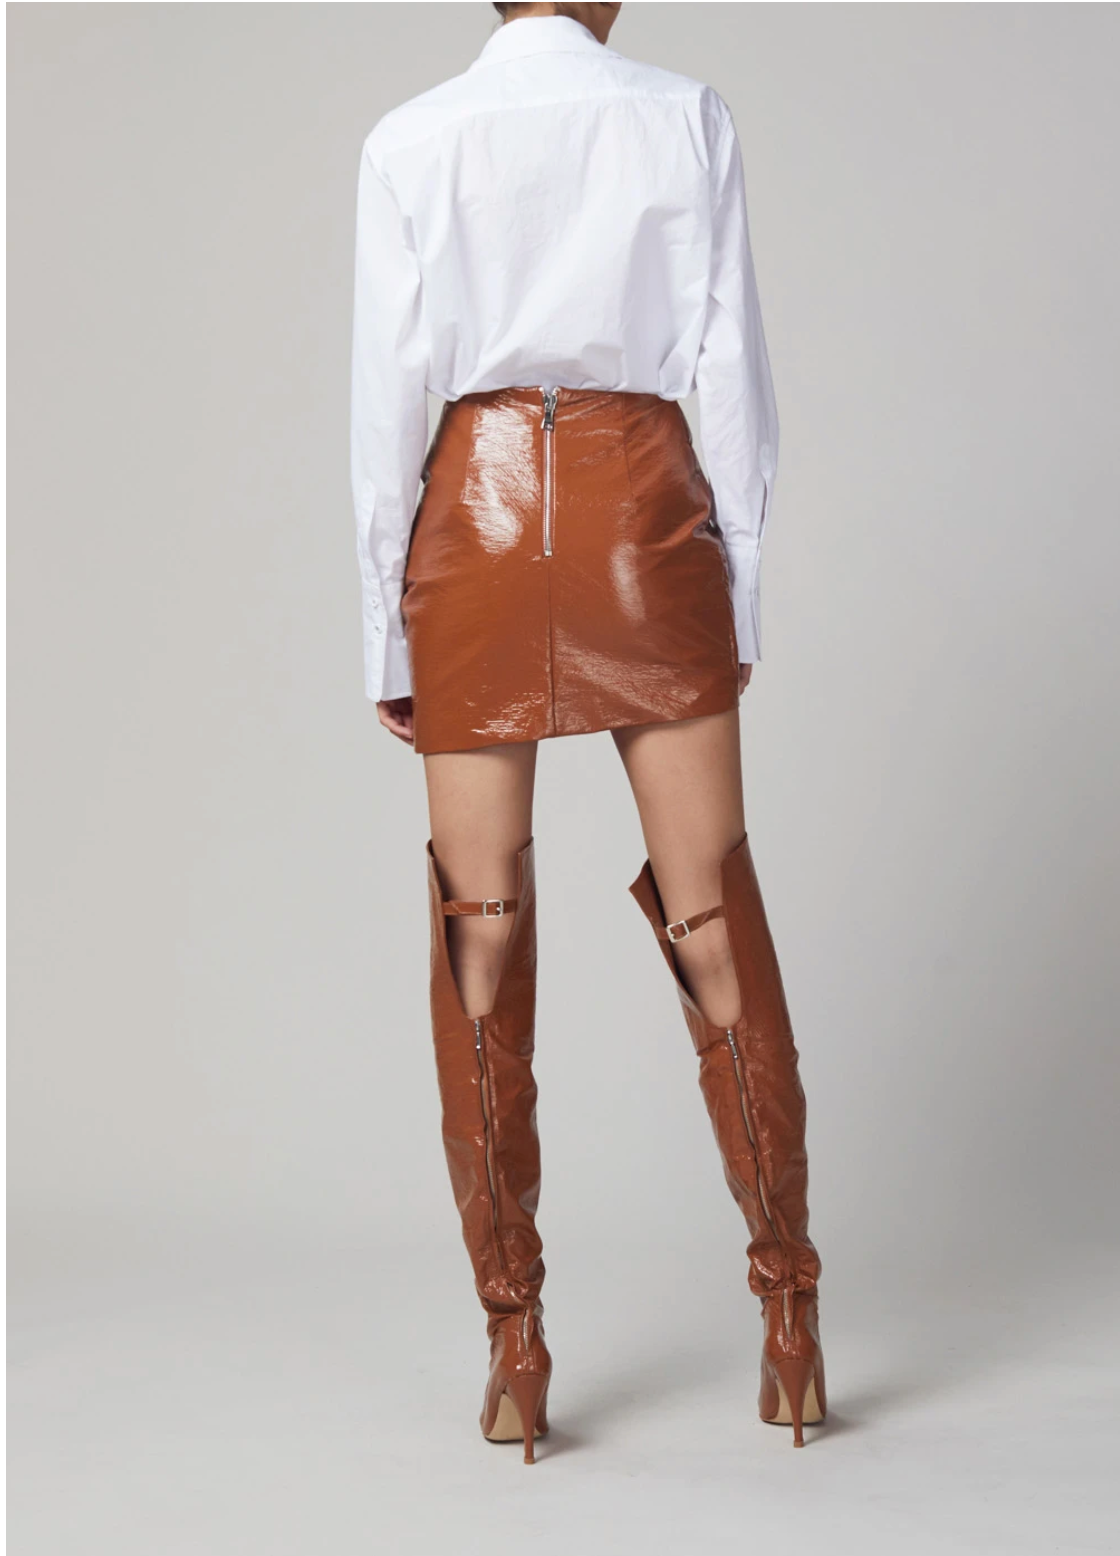 Bec & Bridge Babette Mini Skirt - Toffee